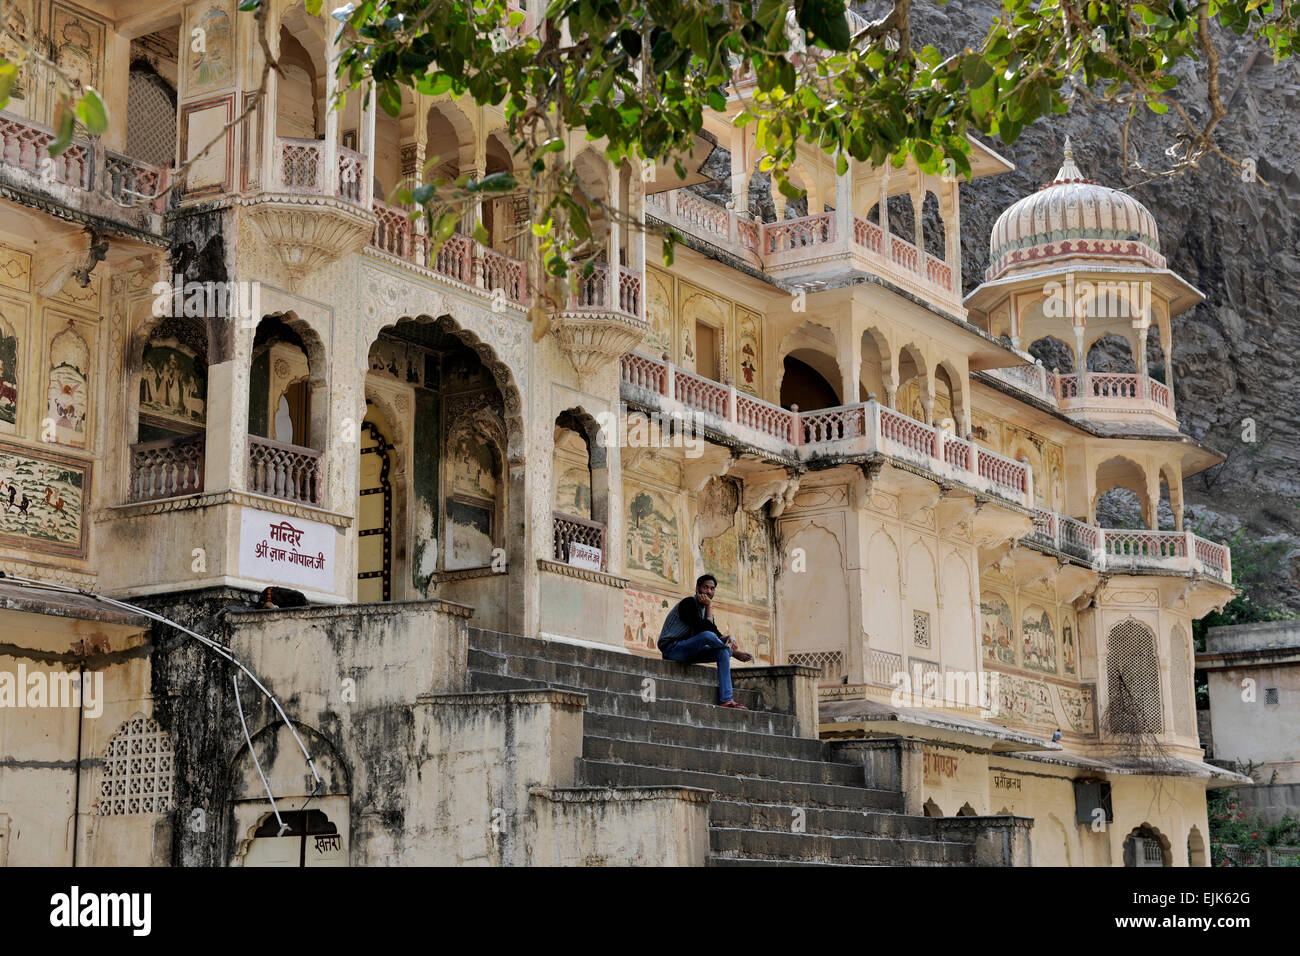 Monkey Temple (Galwar Bagh), Jaipur en Inde Photo Stock